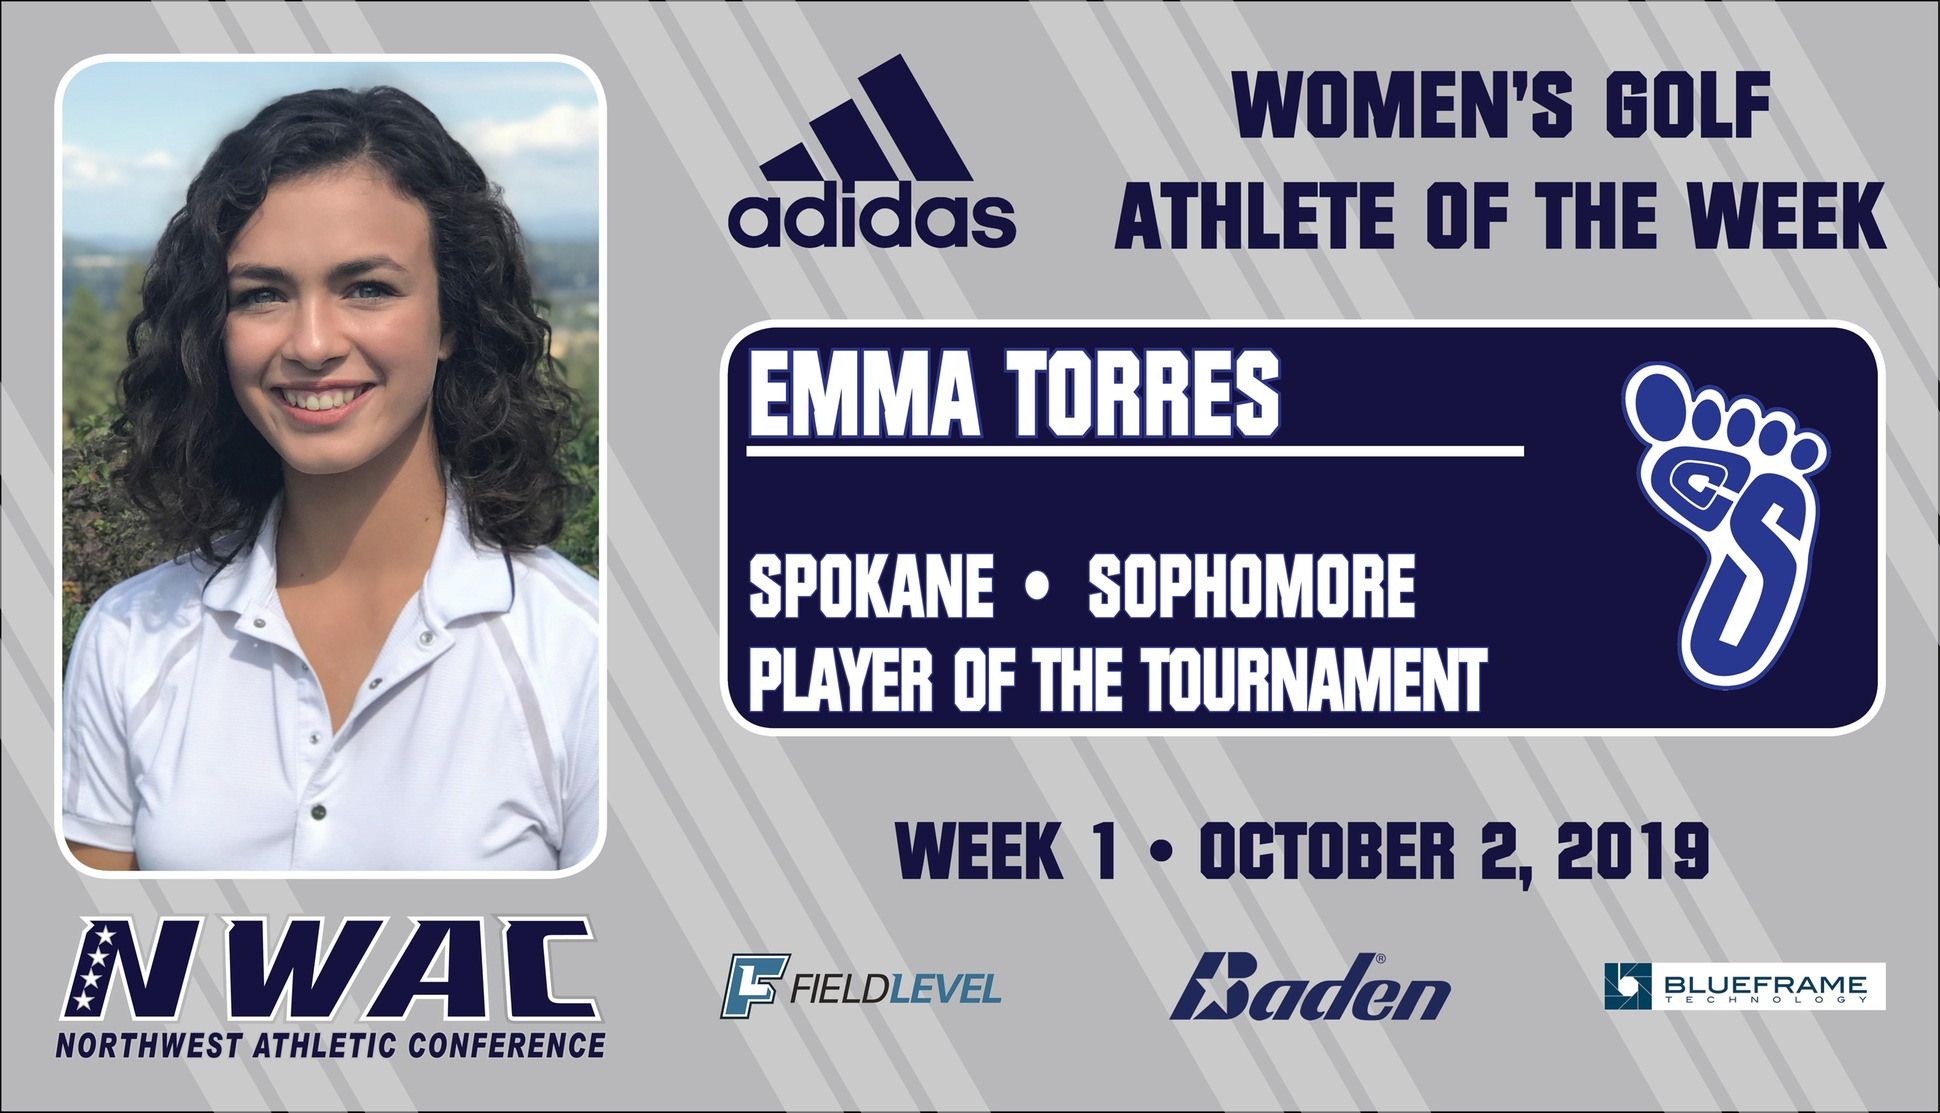 graphic of Emma Torres